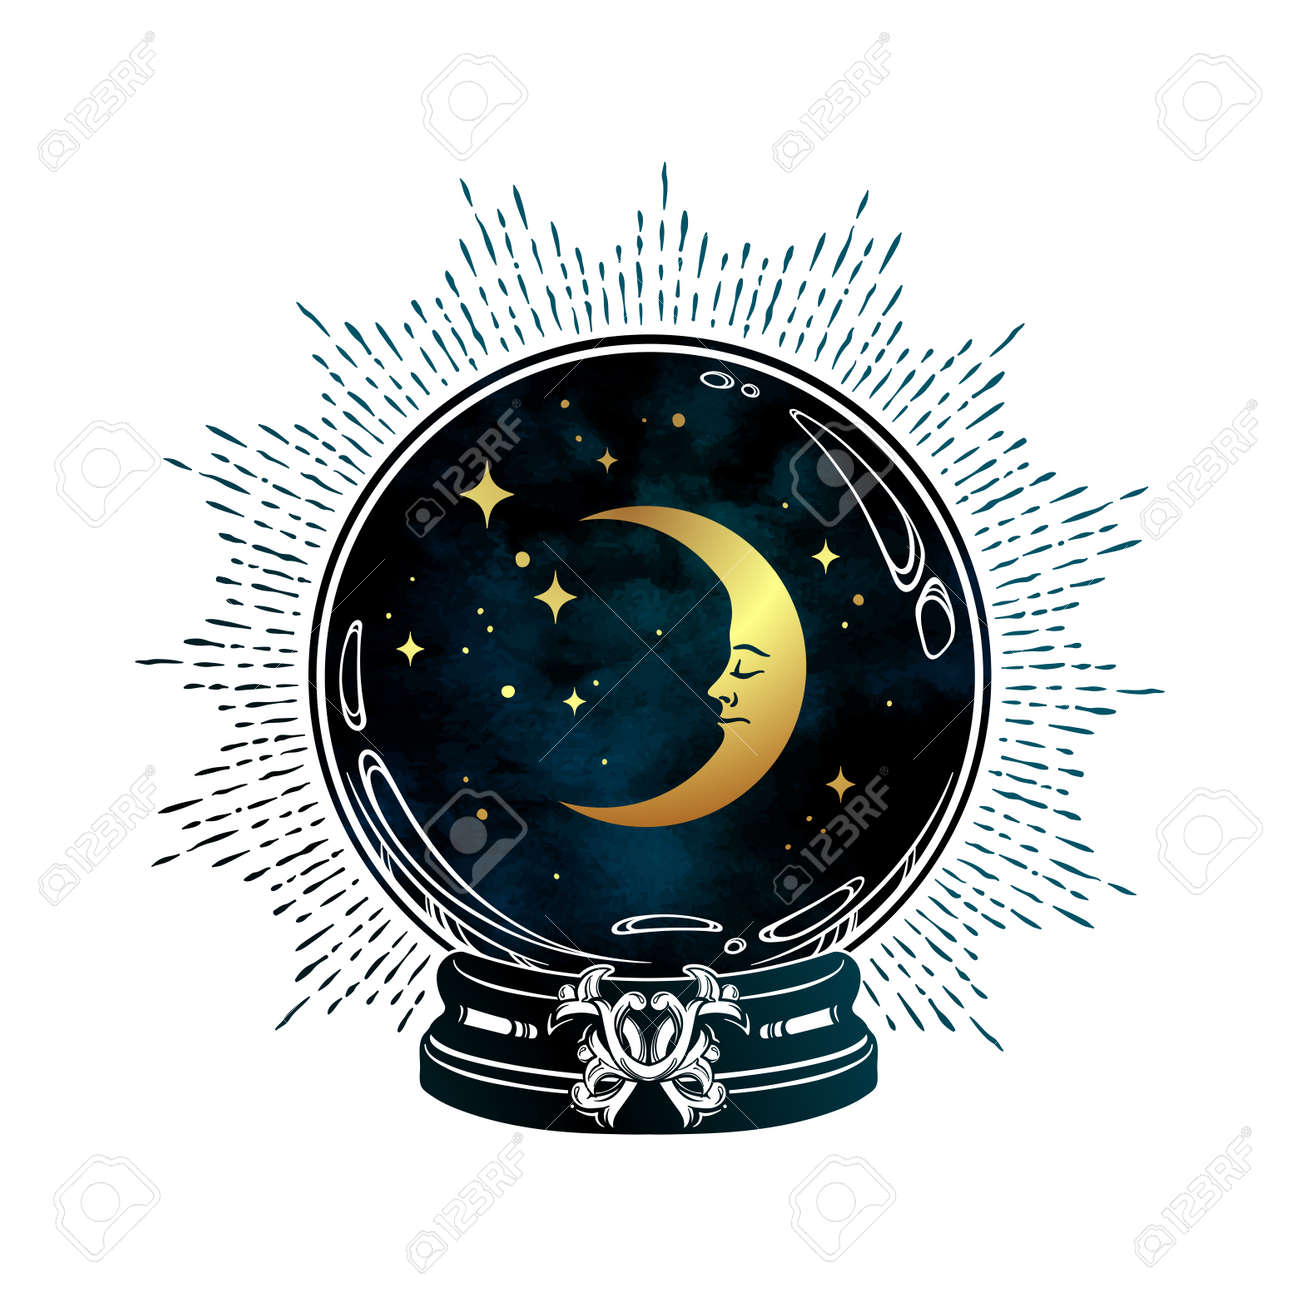 Hand drawn magic crystal ball with crescent moon and stars line art and dot work. Boho chic tattoo, poster or altar veil print design vector illustration - 163870721